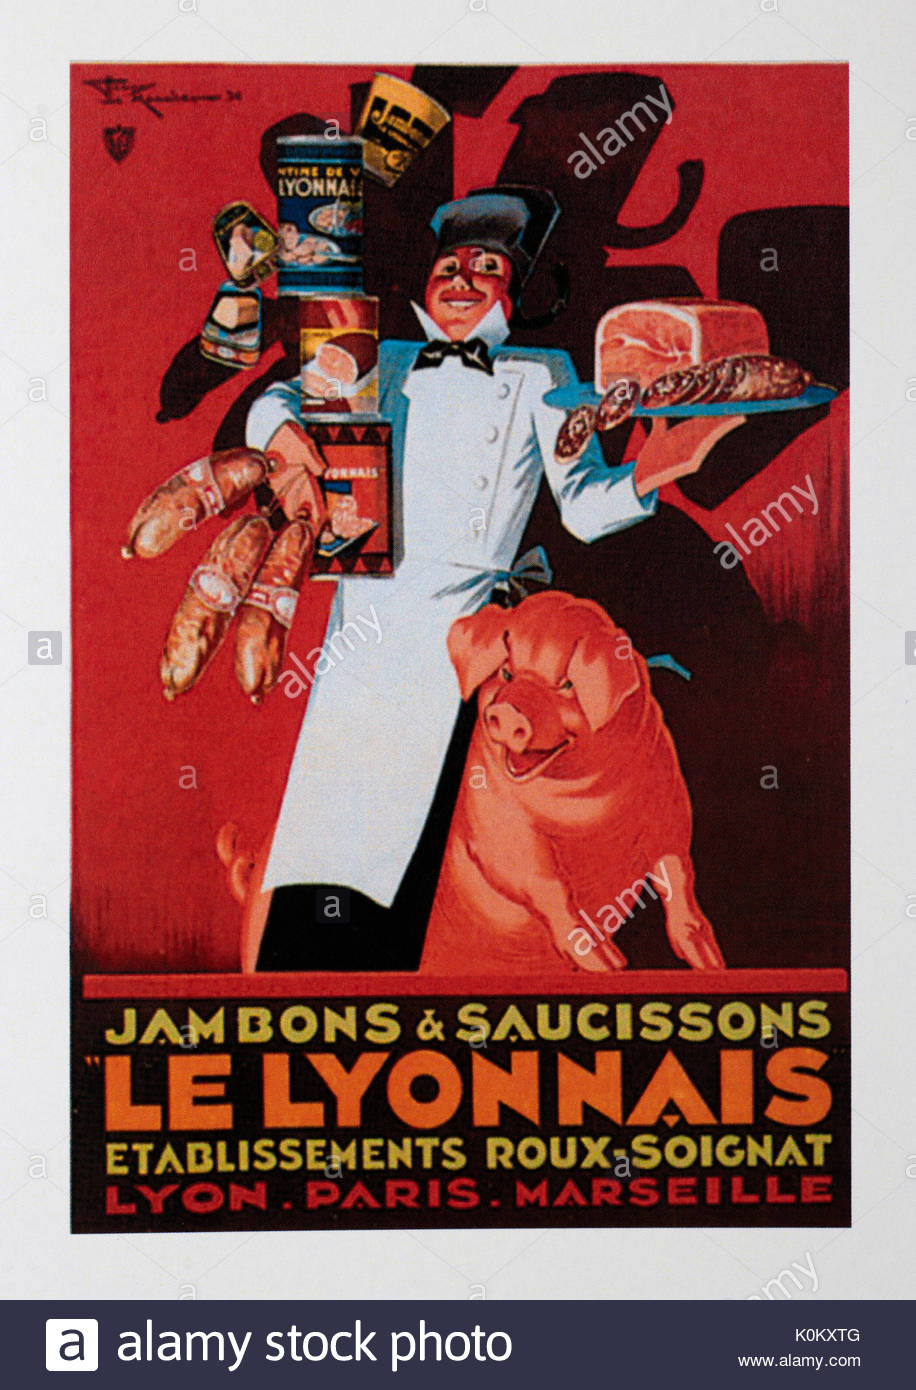 Vintage Food Advertisement Poster advertising Le lyonnais - Stock Image